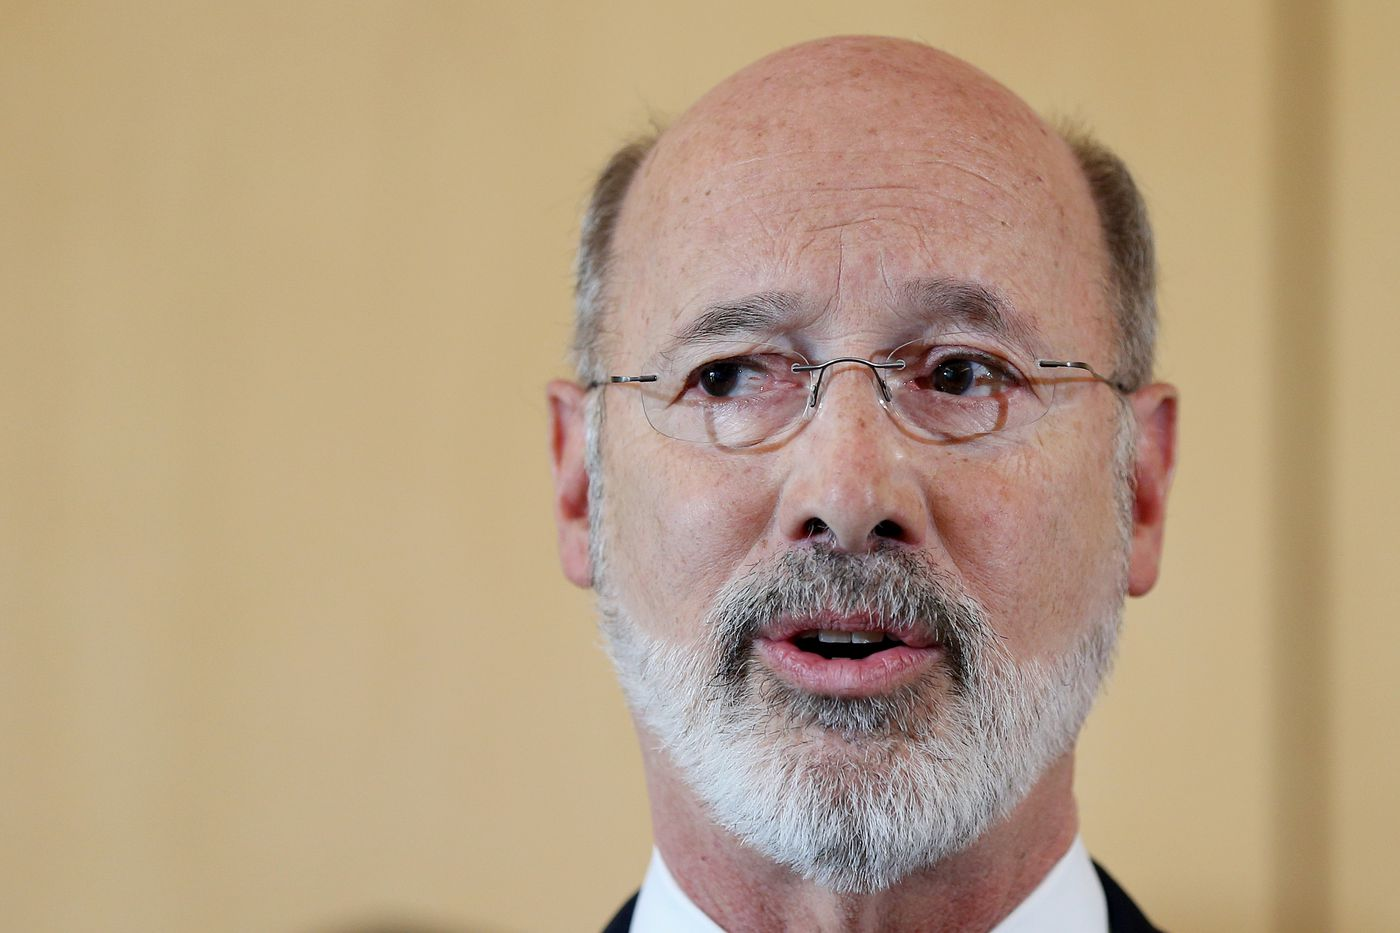 Pa. approves $60 million for school safety